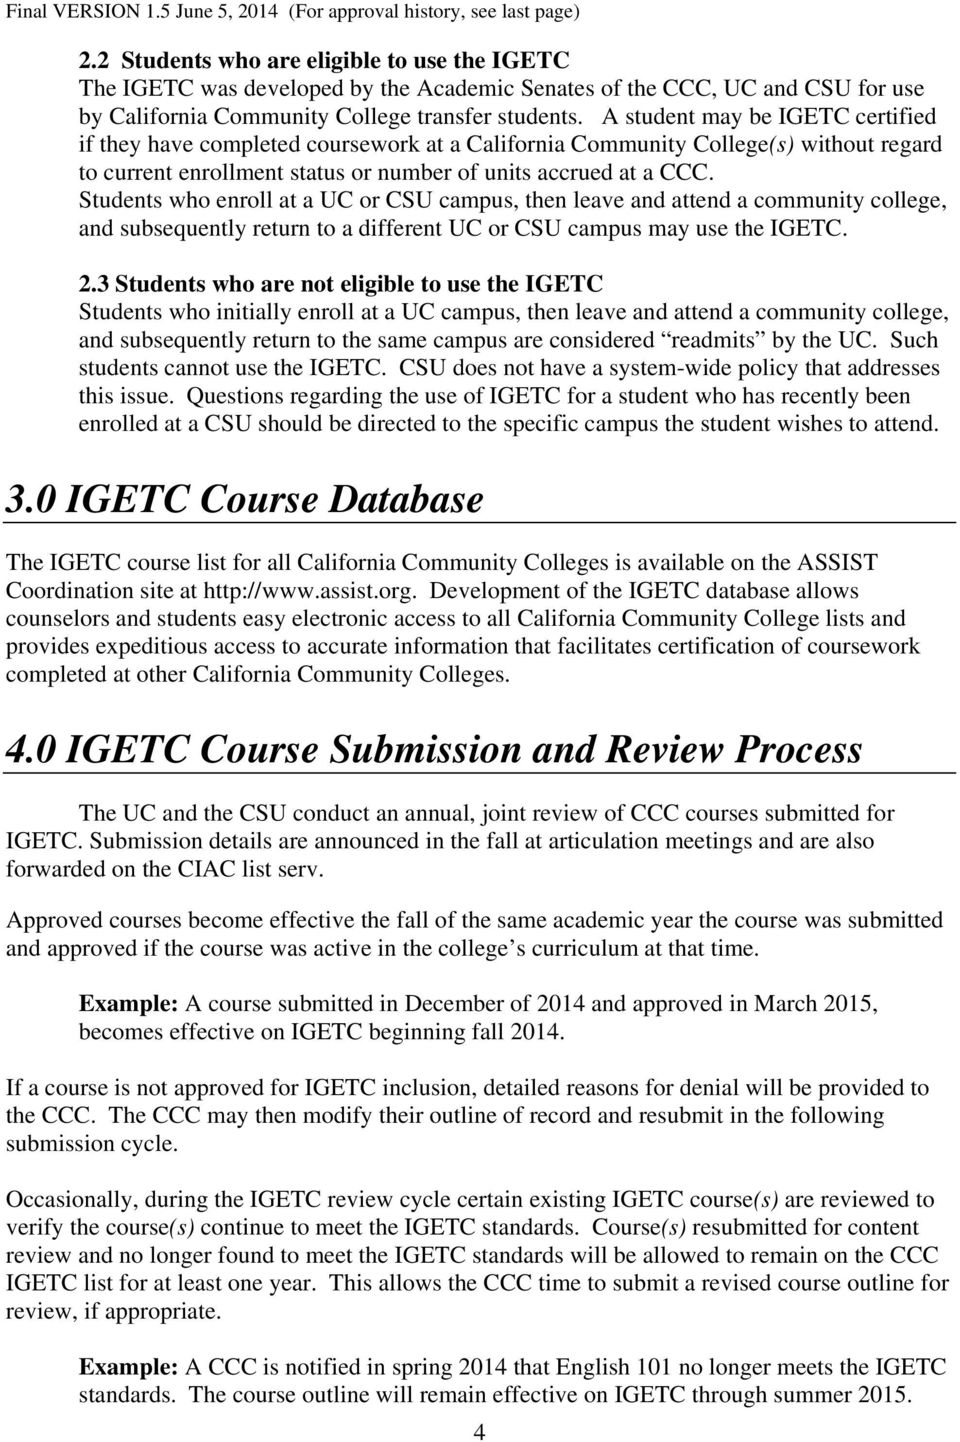 Students who enroll at a UC or CSU campus, then leave and attend a community college, and subsequently return to a different UC or CSU campus may use the IGETC. 2.